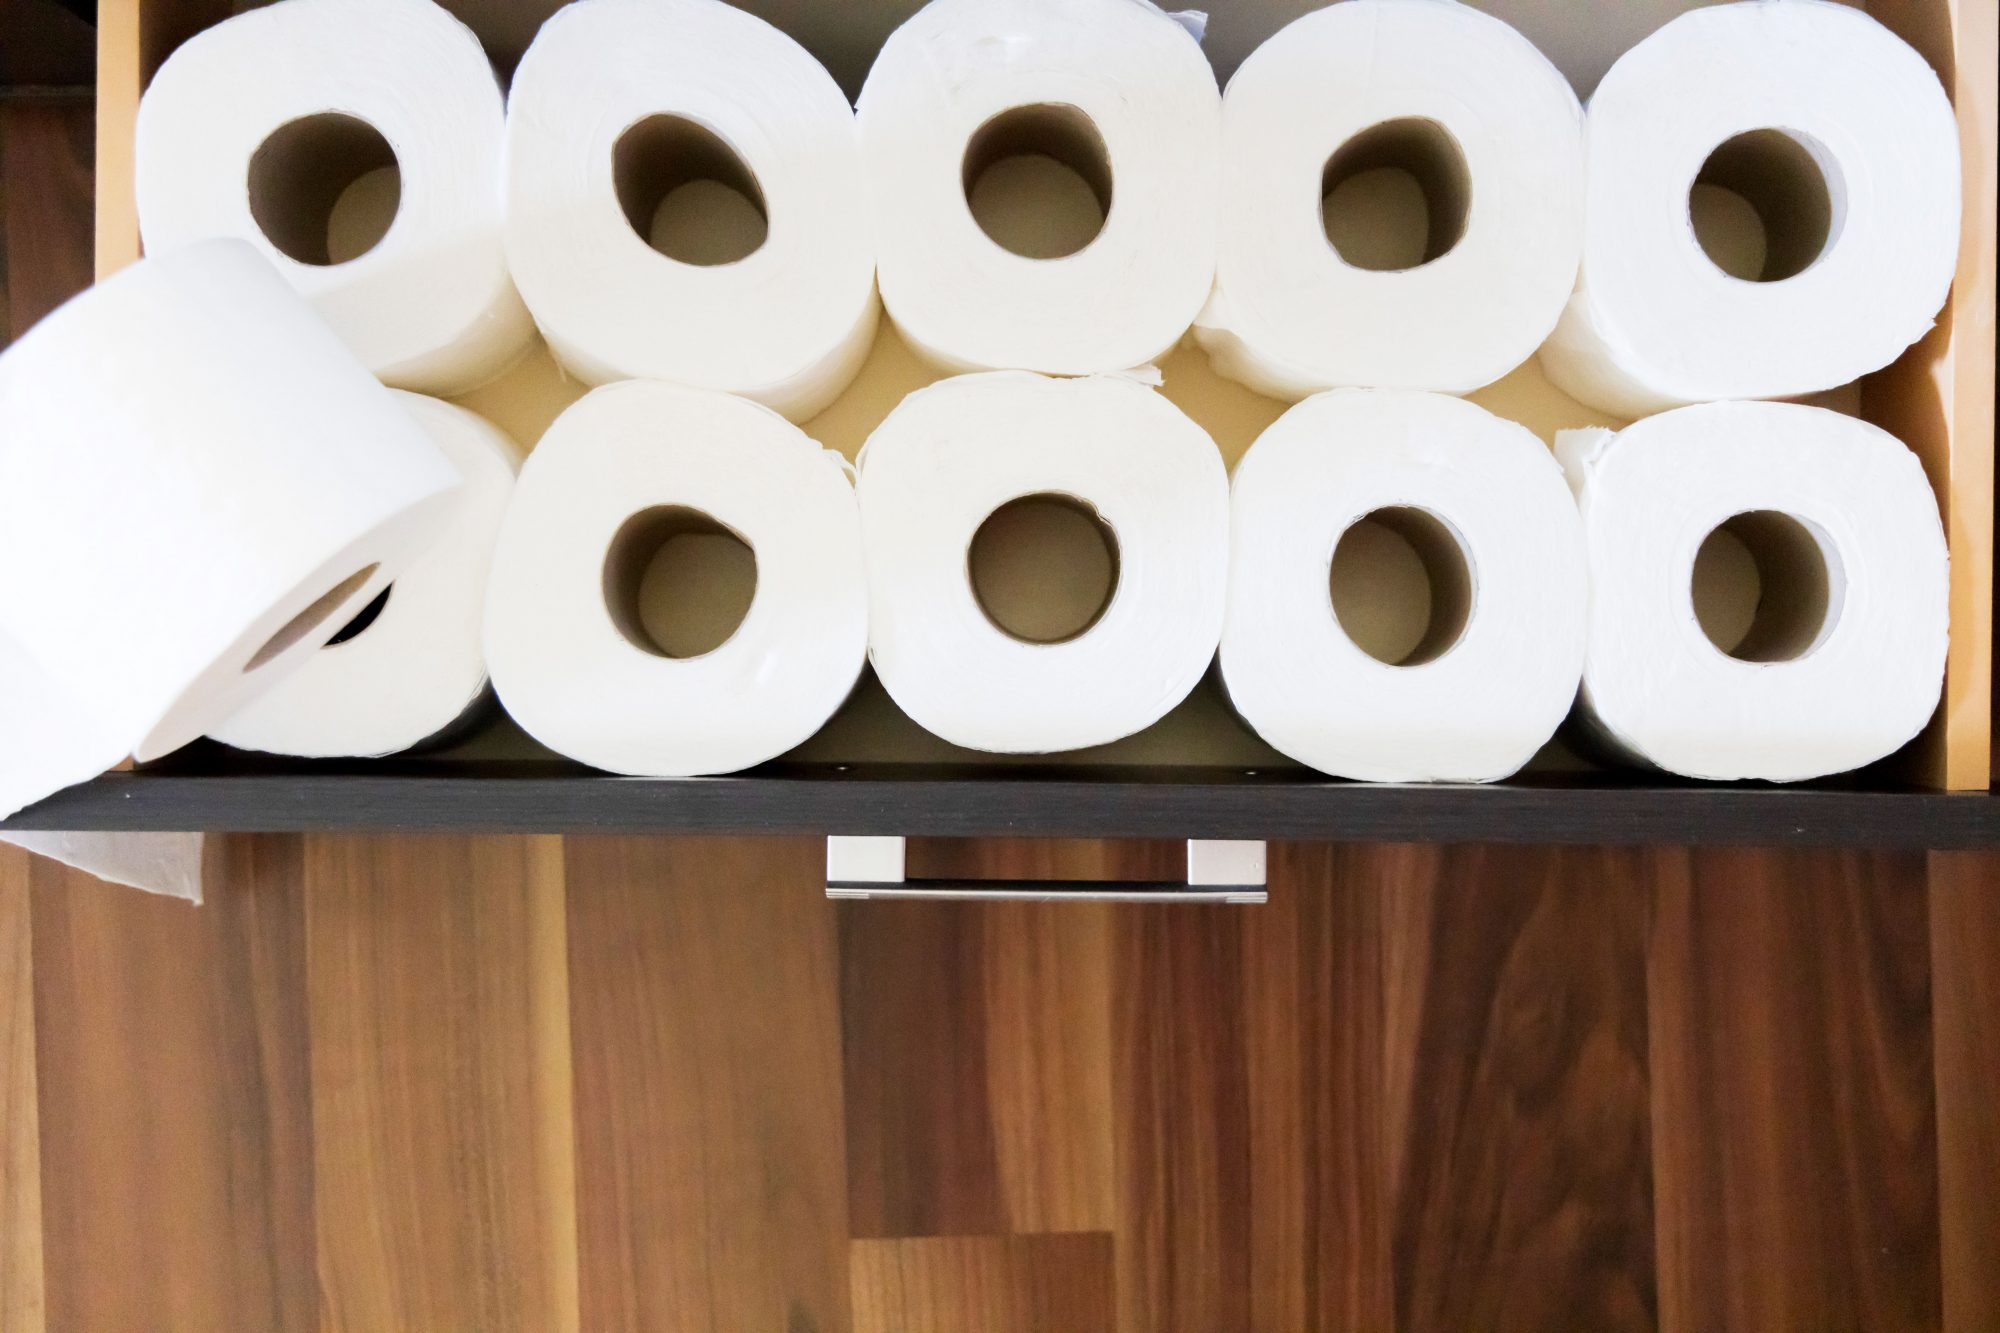 organized toilet paper in drawer